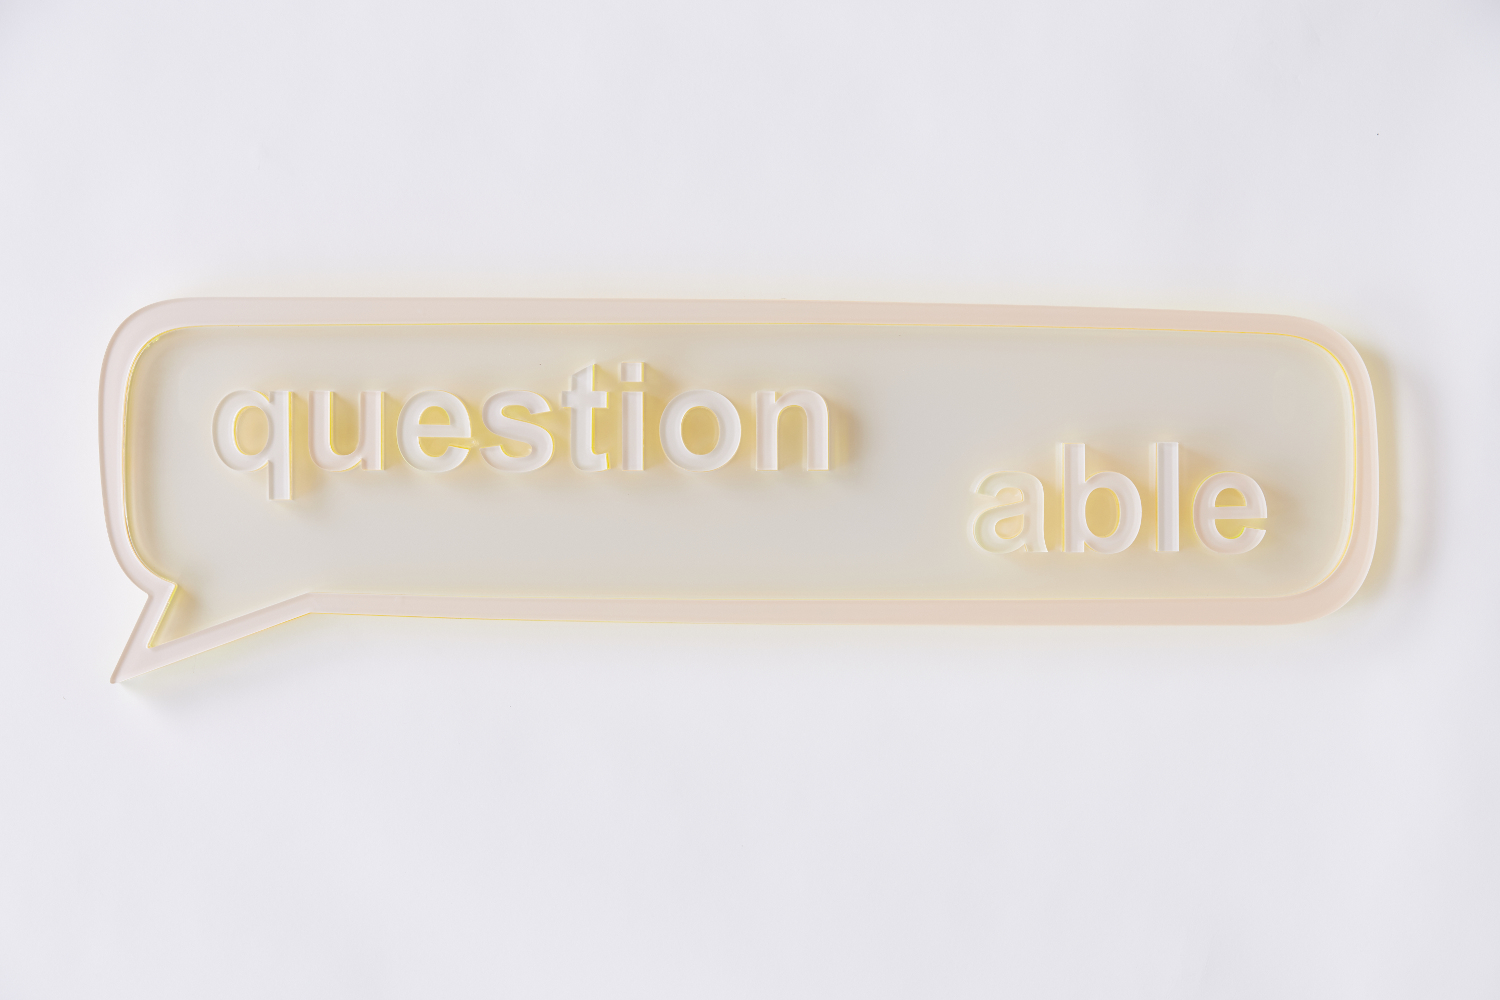 Tamar Klar, Question able, 2017